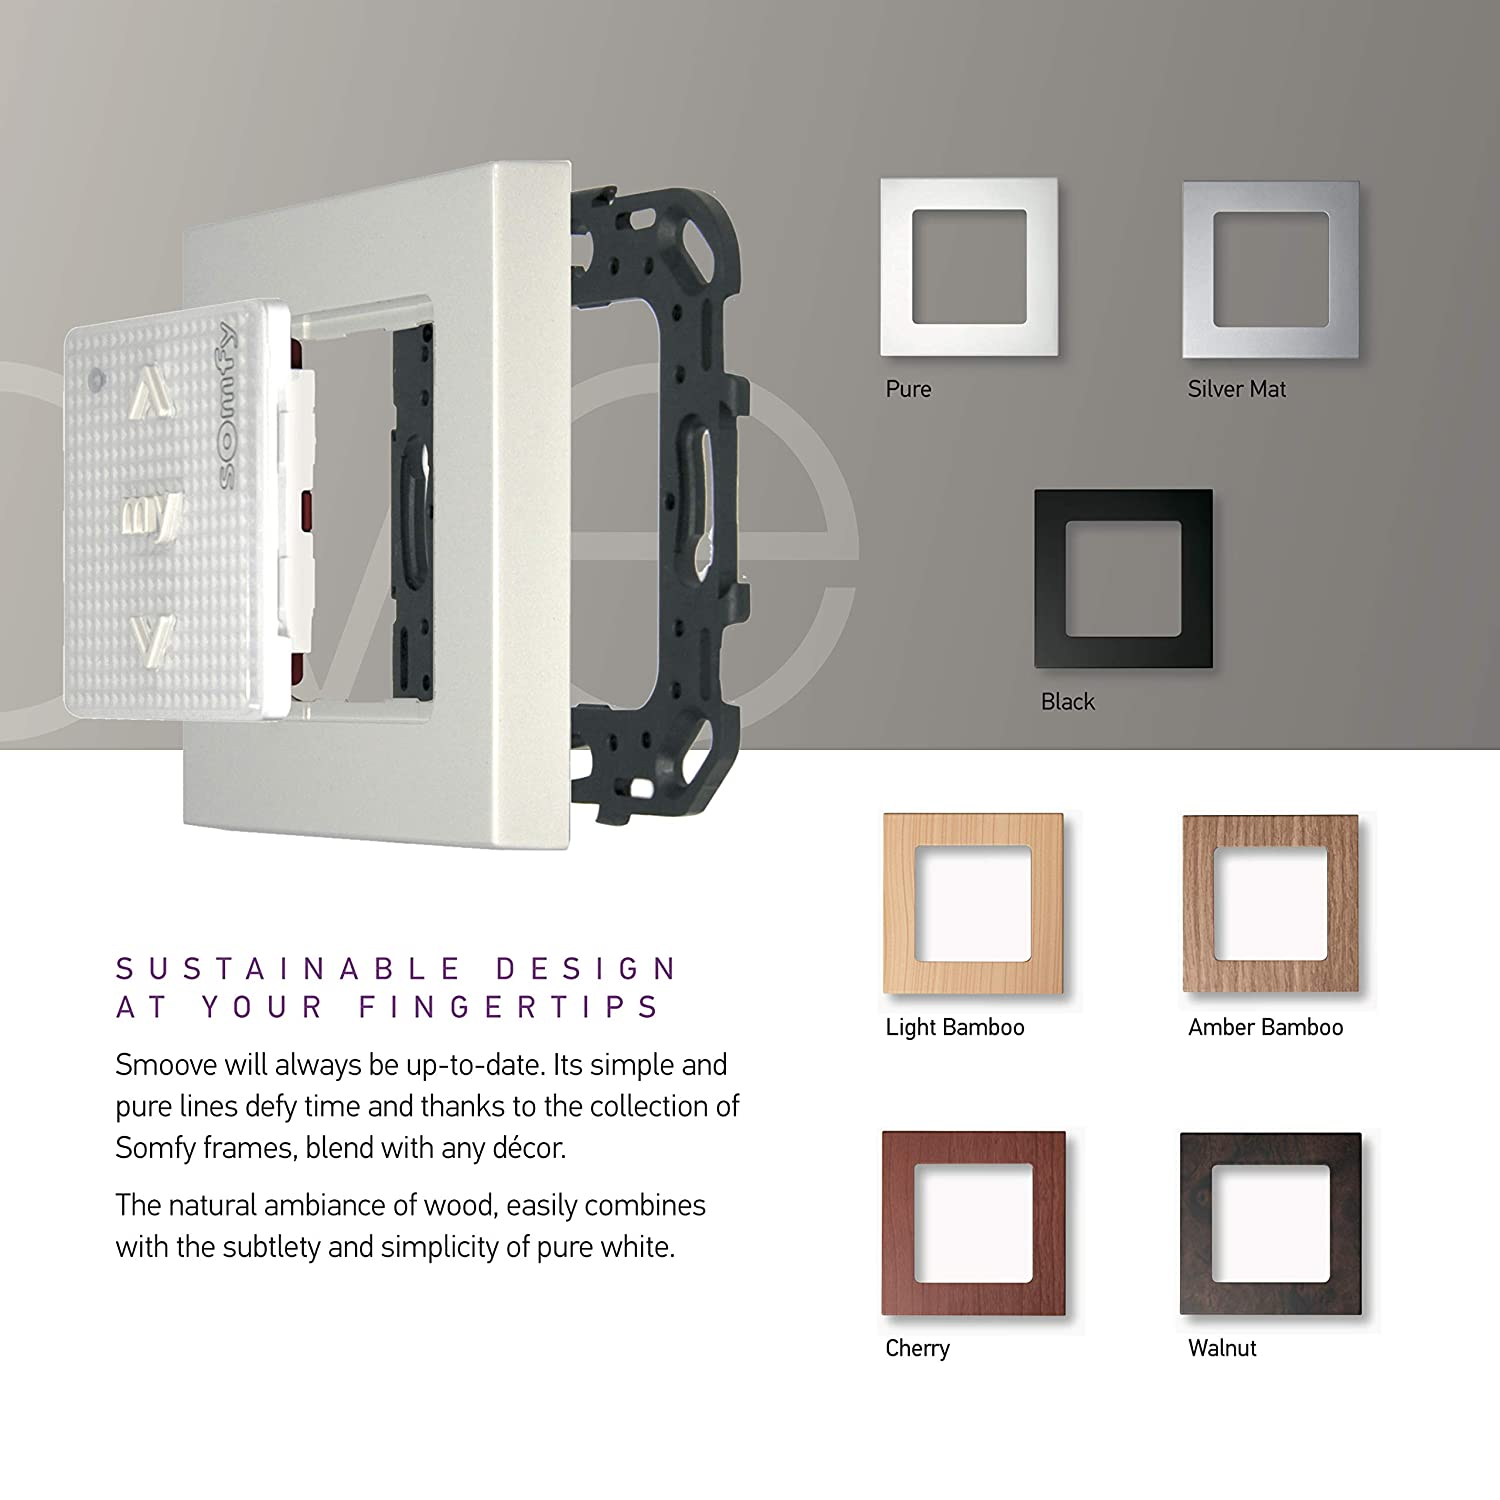 Somfy SMOOVE ORIGIN RTS 1 channel wall button / remote control 433 42 MHz  for roller shutters with frame - 1810880 / 1811045